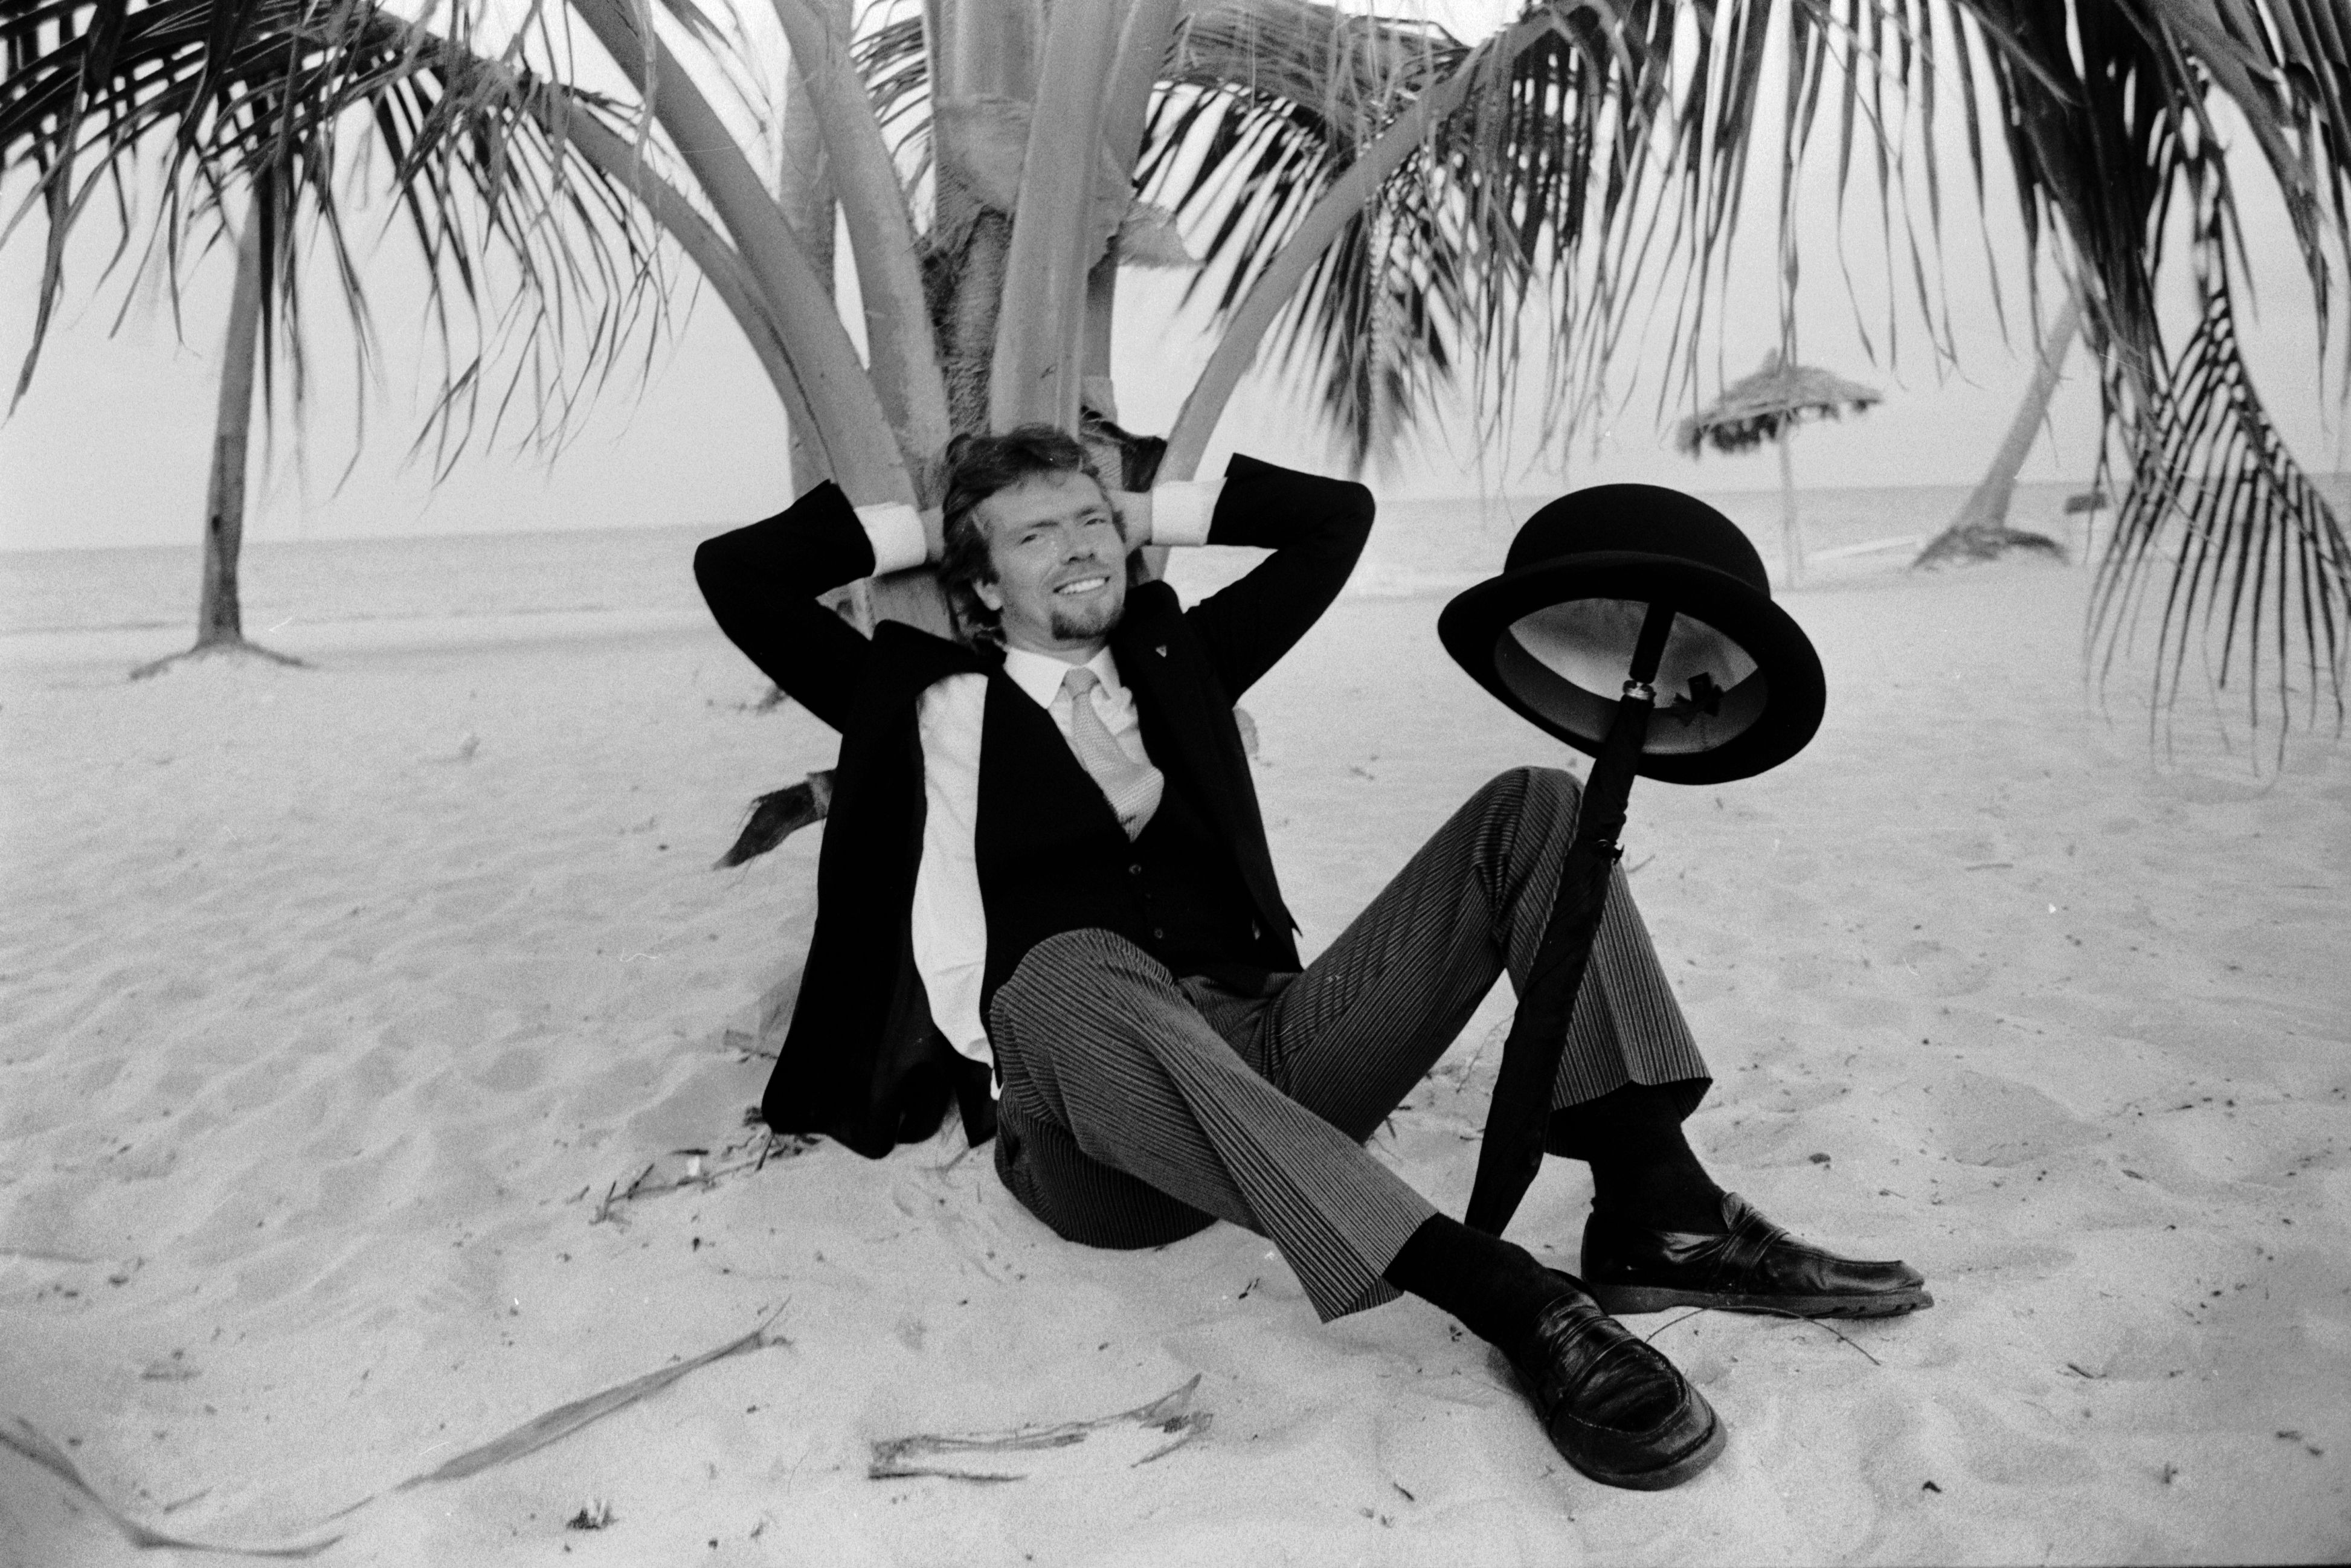 A young billionaire Richard Branson sits under some palm trees, daring you to complete the quiz